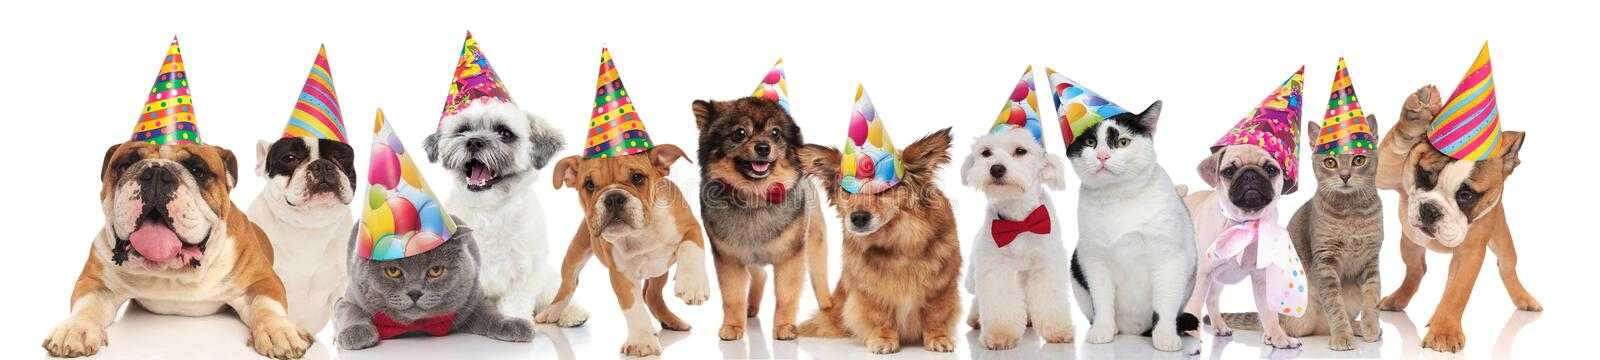 Adorable cats and dogs attending a birthday party. While standing, sitting and lying on white background royalty free stock photos